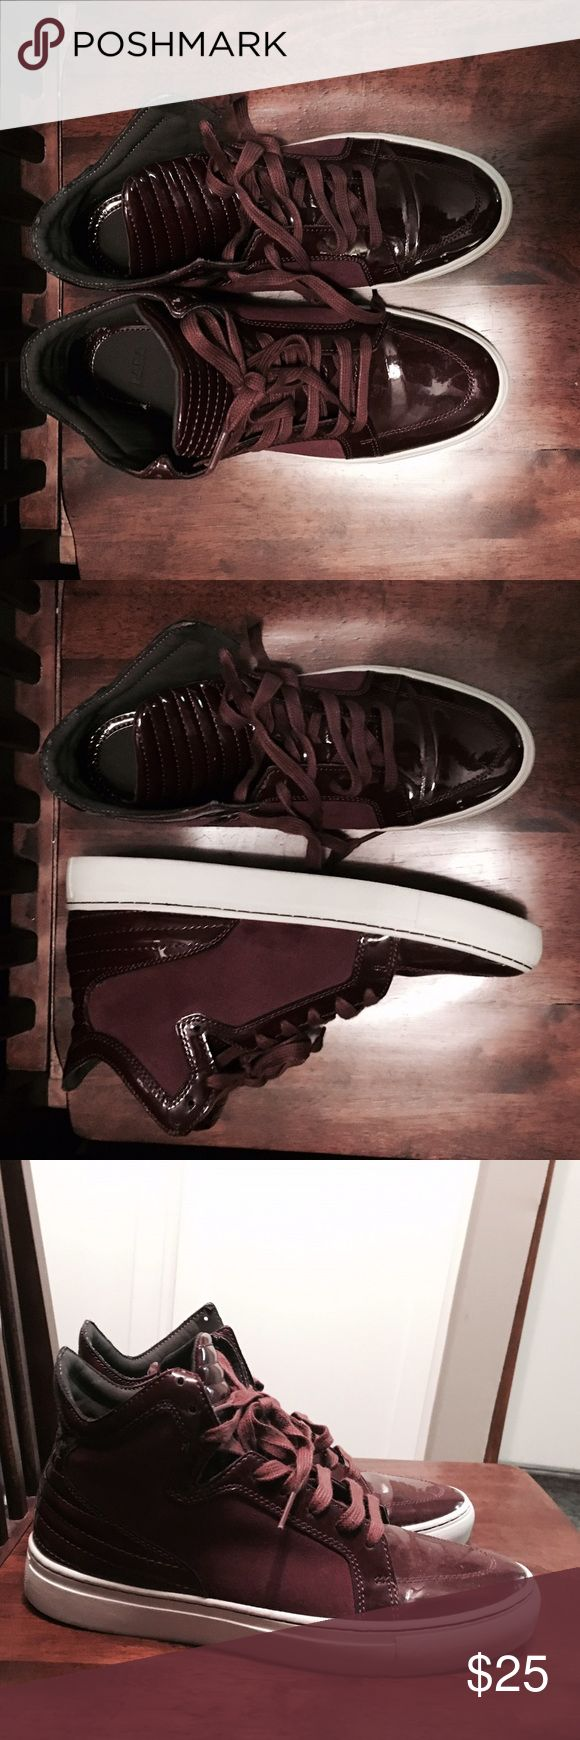 Zara High Top Shoes #High Top Shoes #for Men #Gently used #Box not included #Burgundy #Size: EU 42 / US 9 Zara Shoes Sneakers